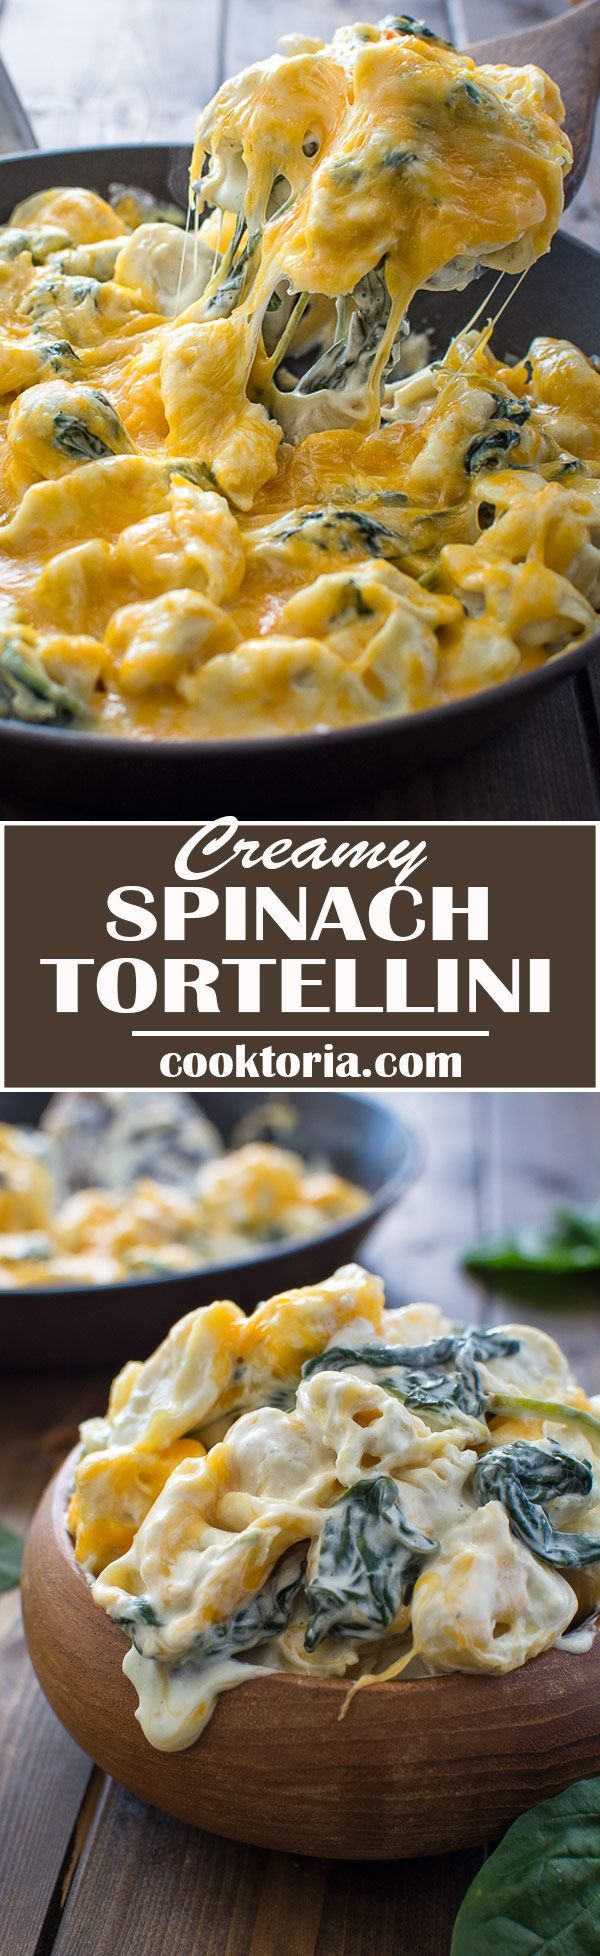 This 5-ingredient Creamy Spinach Tortellini makes a quick and tasty dinner that all the family will love! ❤ COOKTORIA.COM